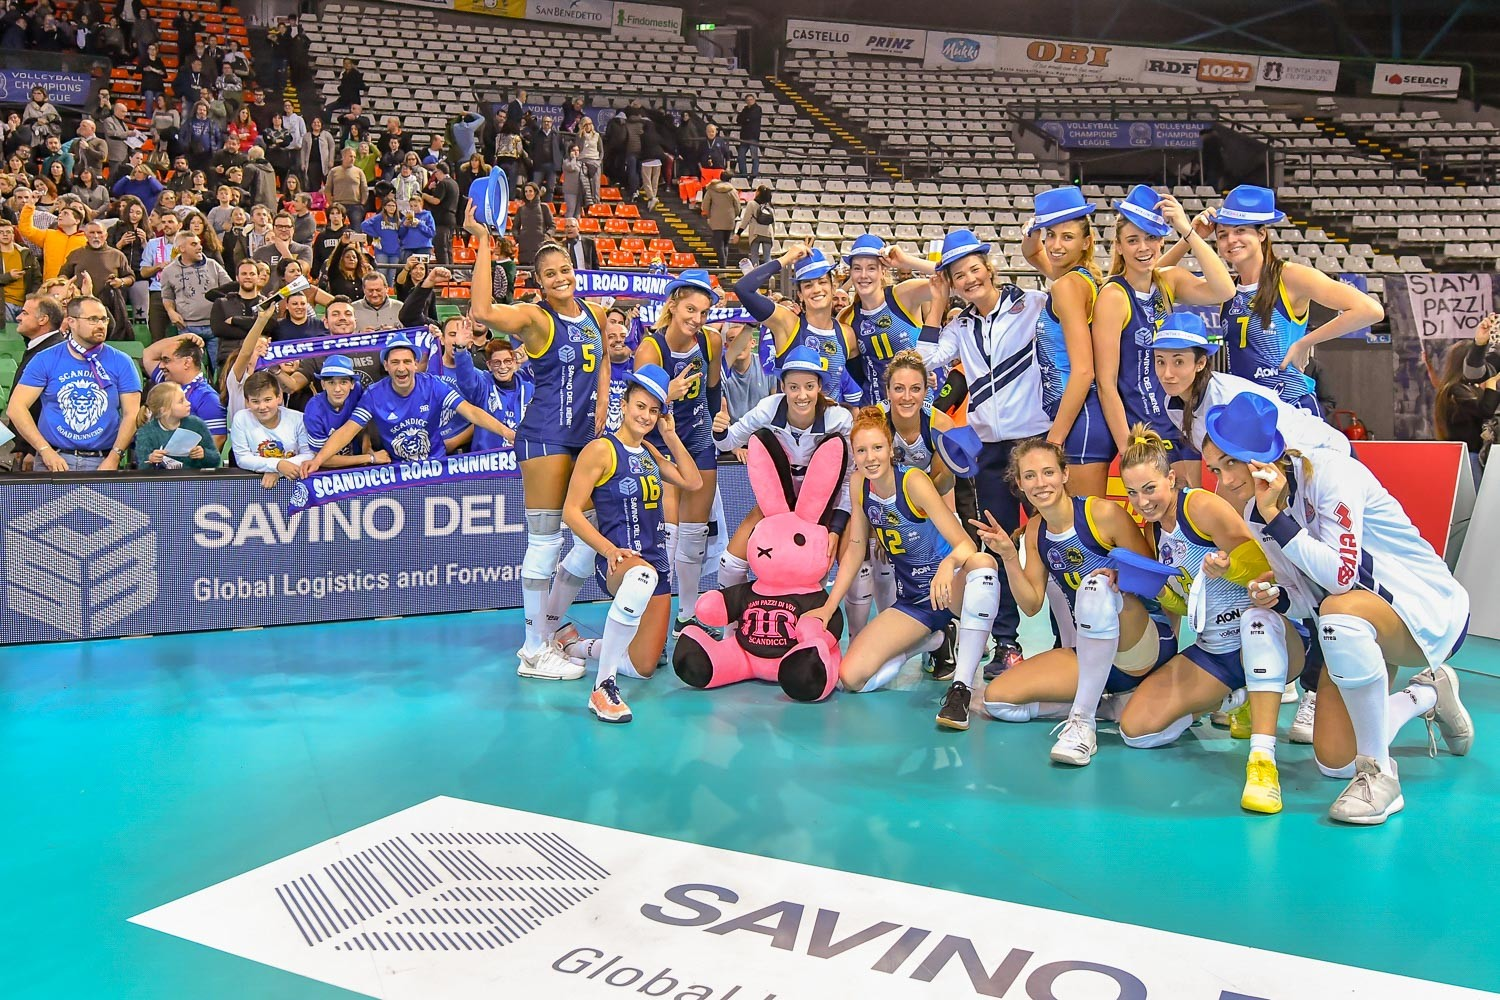 A winning début appearance in the Champions League for Savino Del Bene!!!